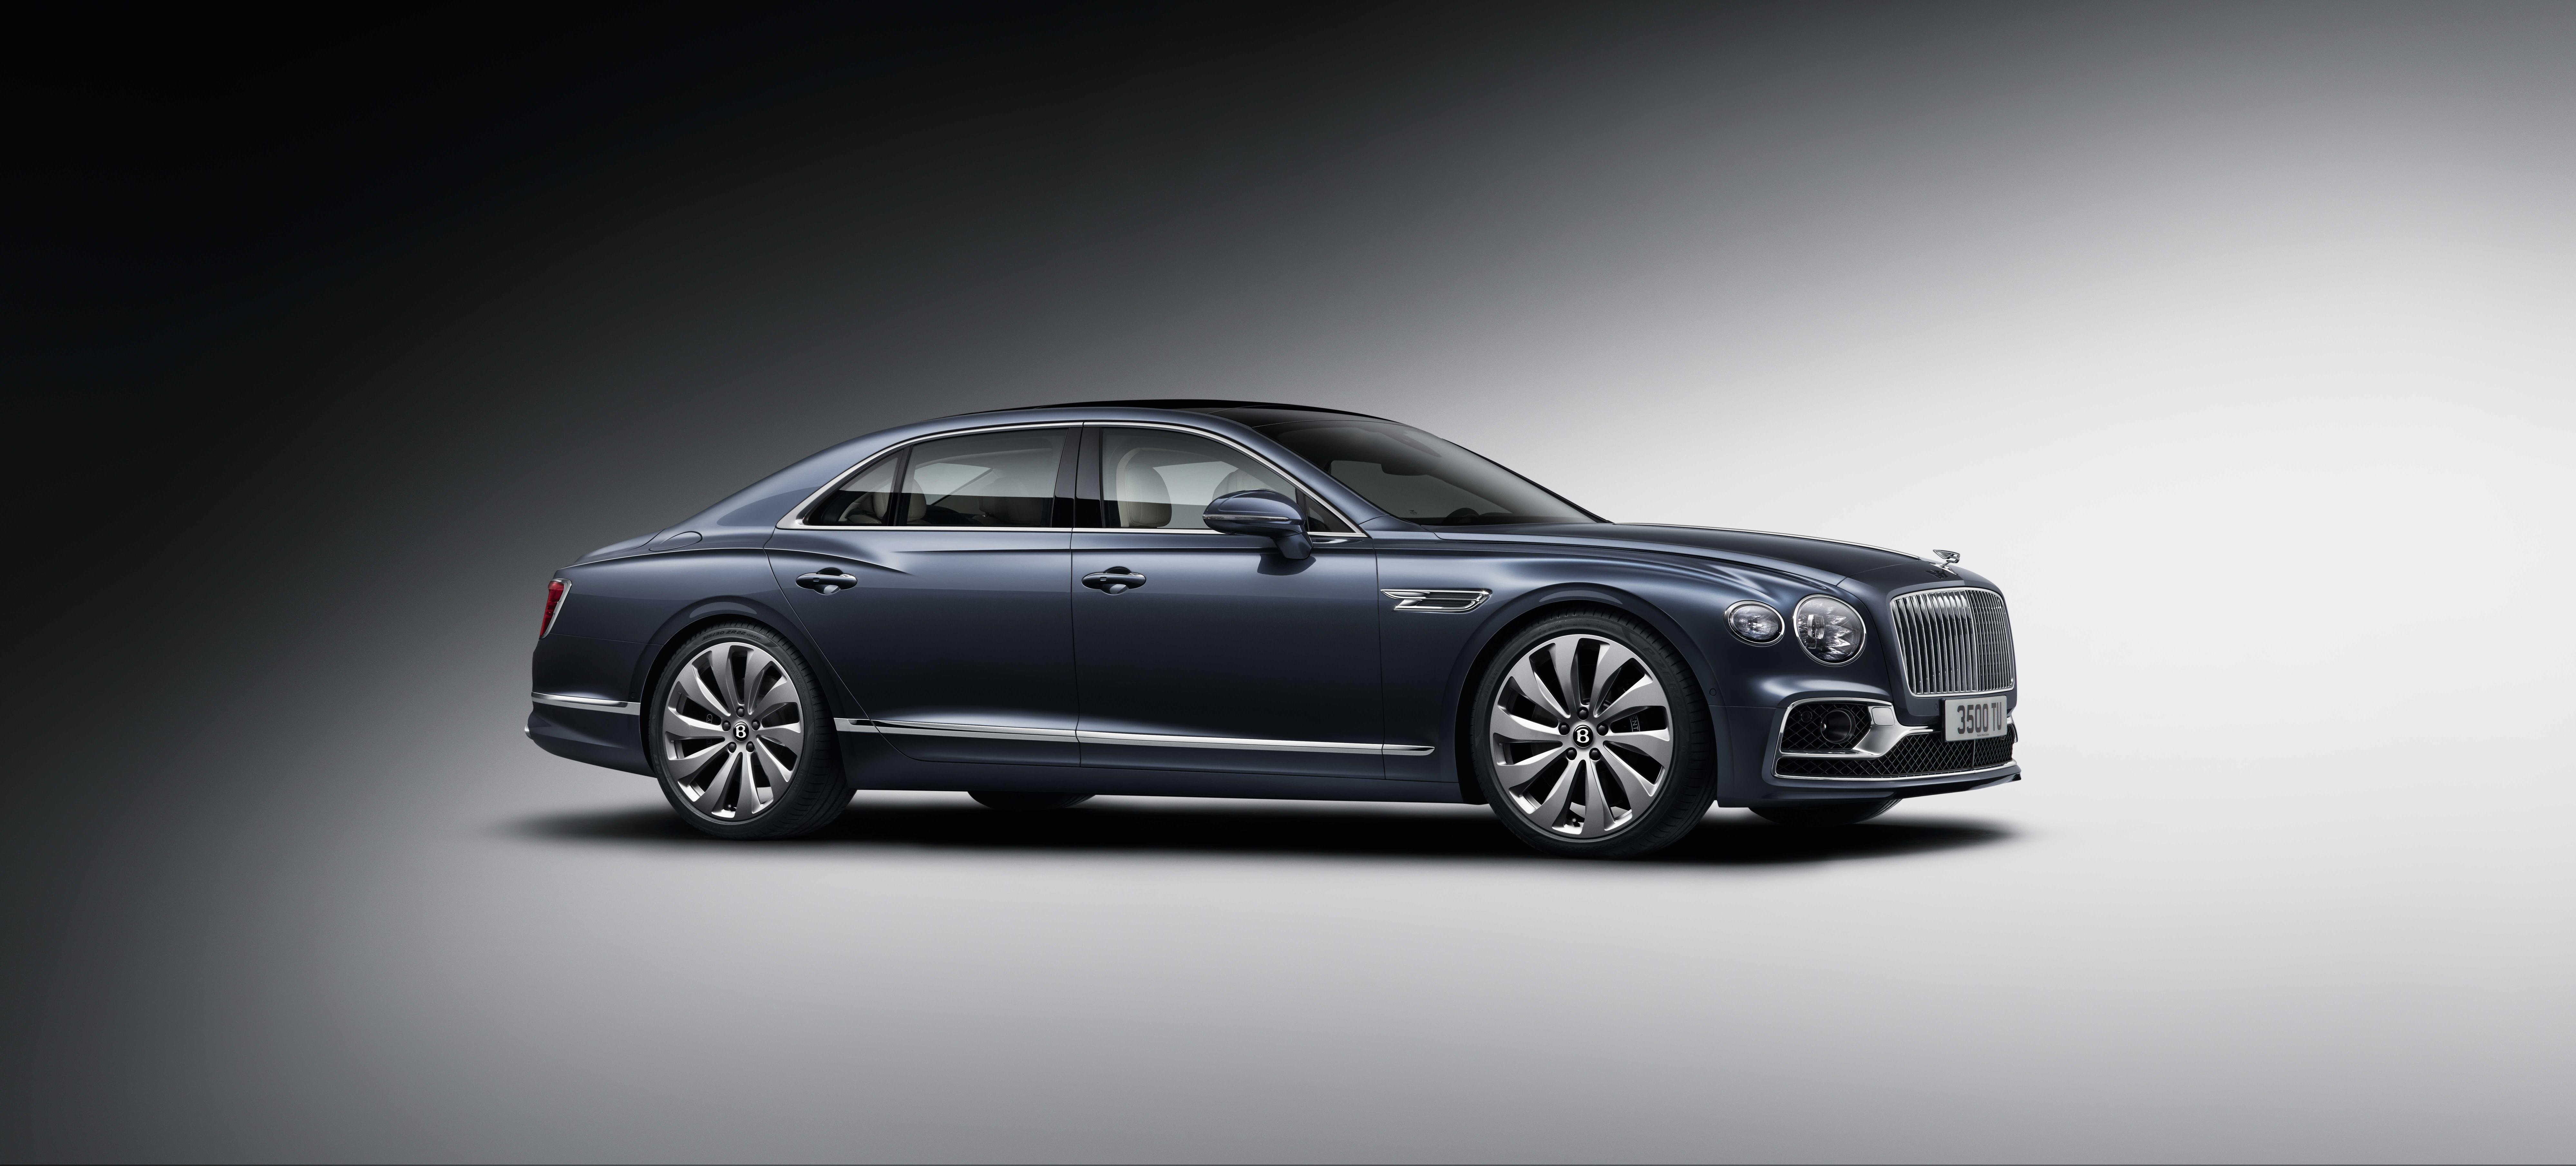 2020 Bentley Flying Spur Side View